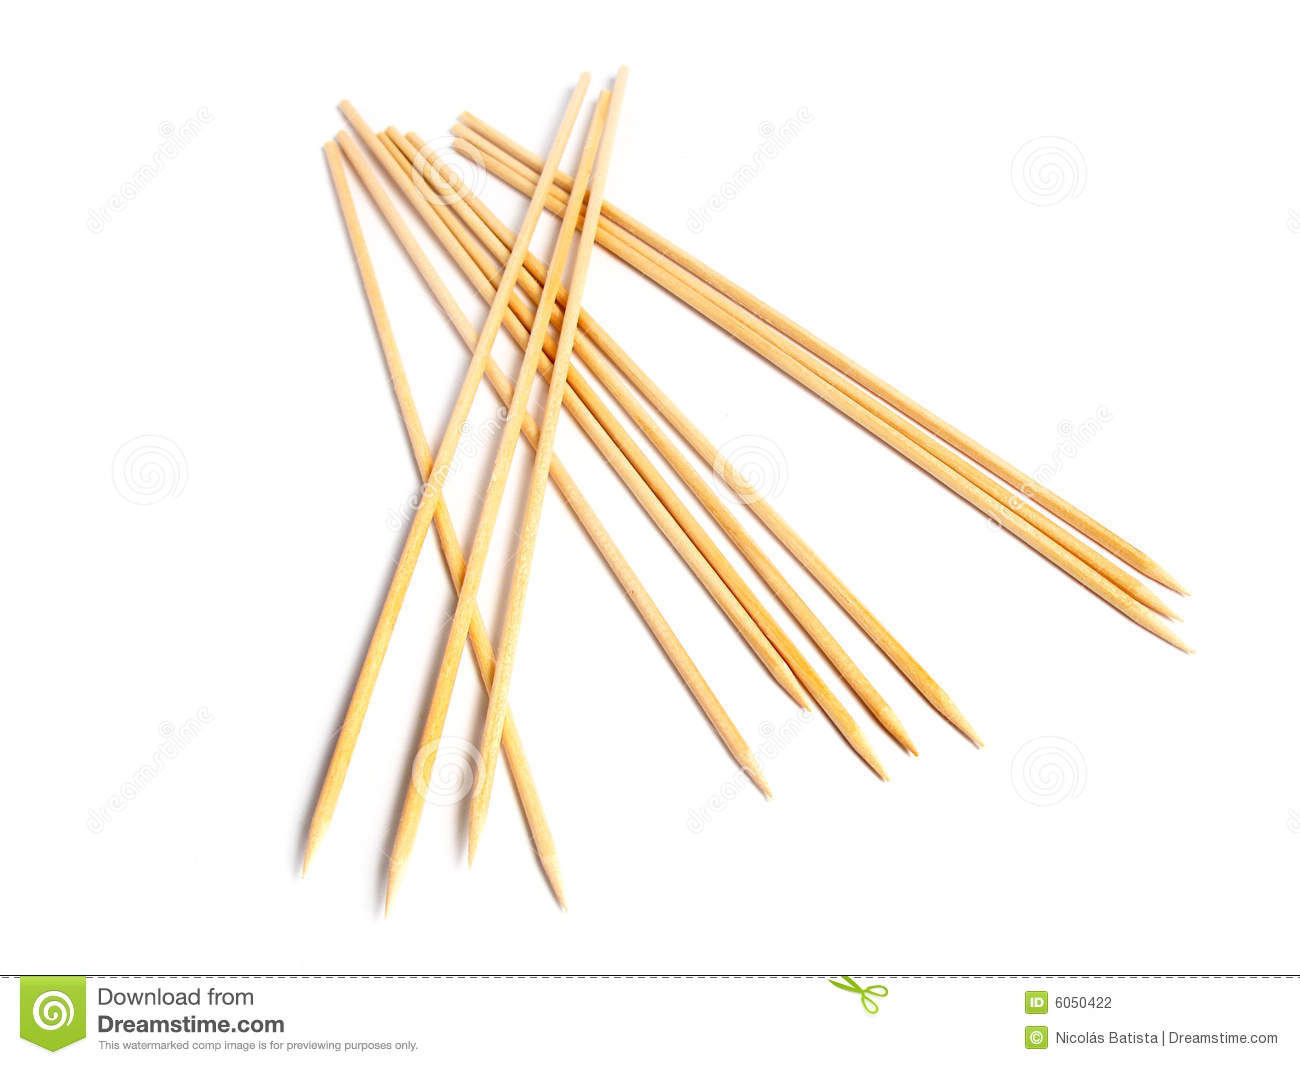 Brochette Wooden Sticks Stock Photography - Image: 6050422